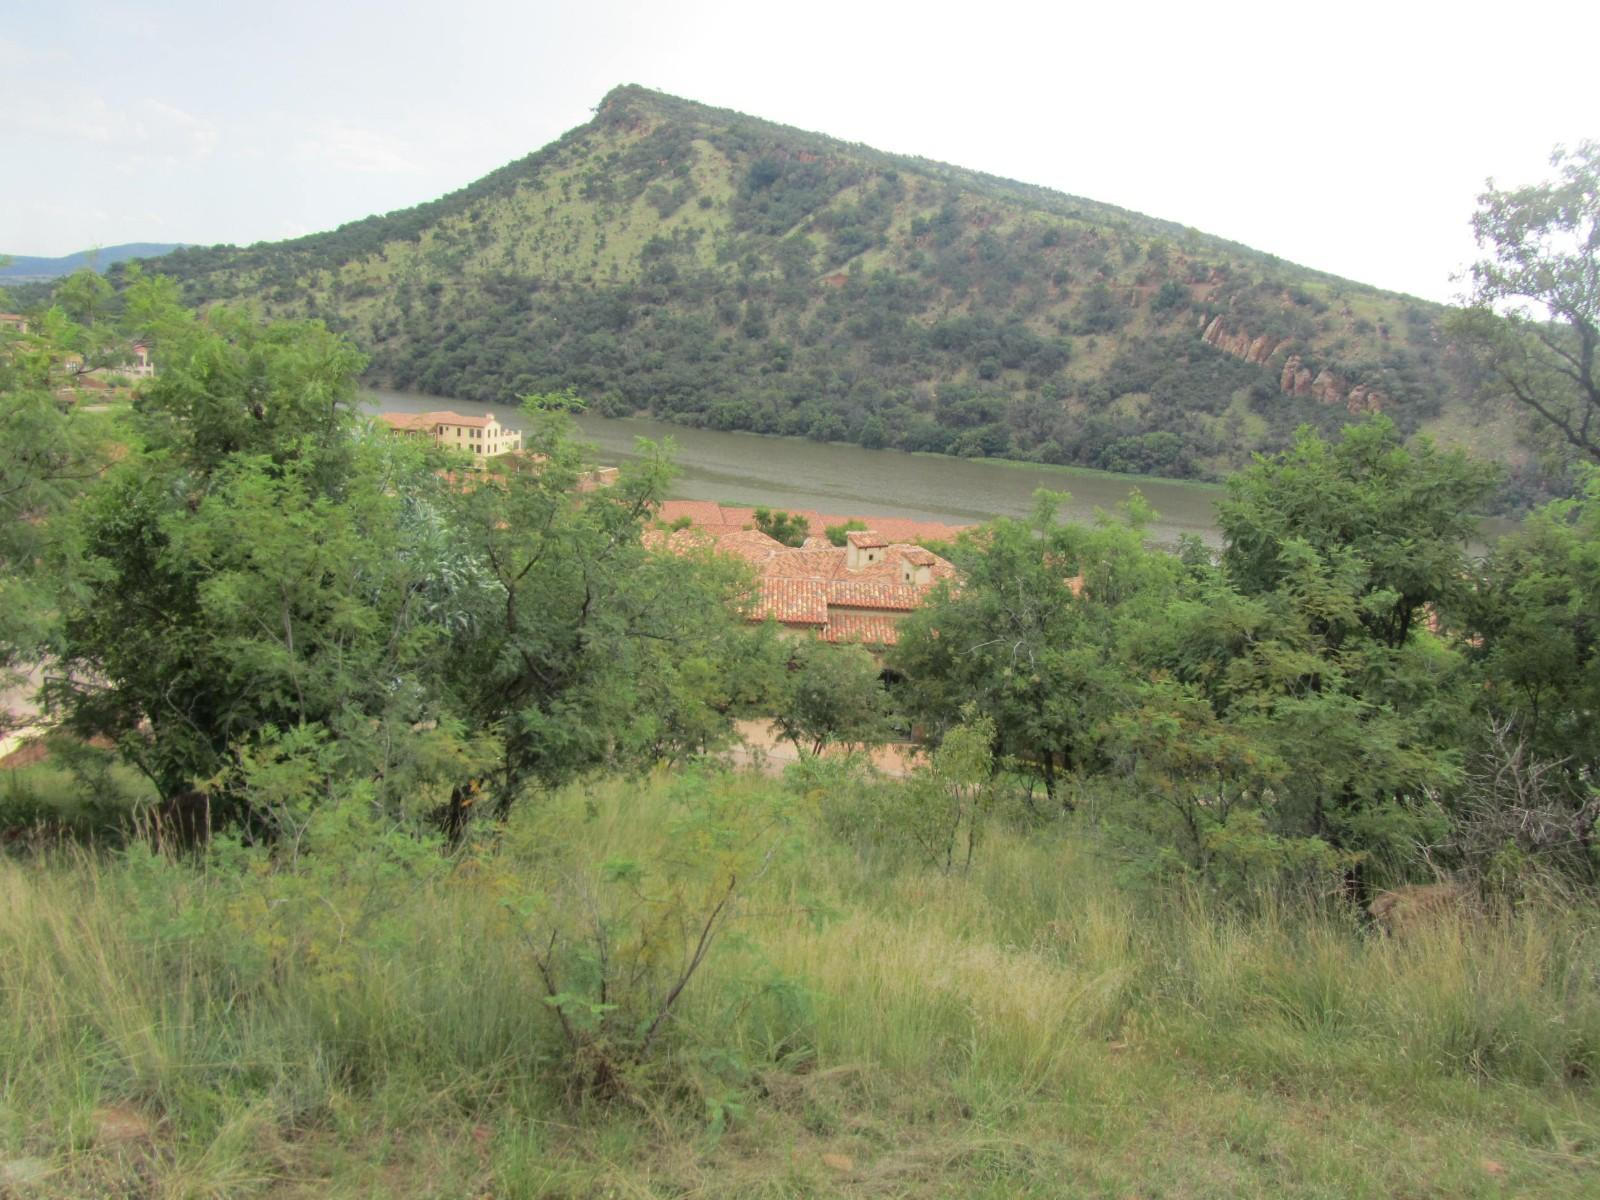 Land in Ville D' Afrique - mountain behind stand